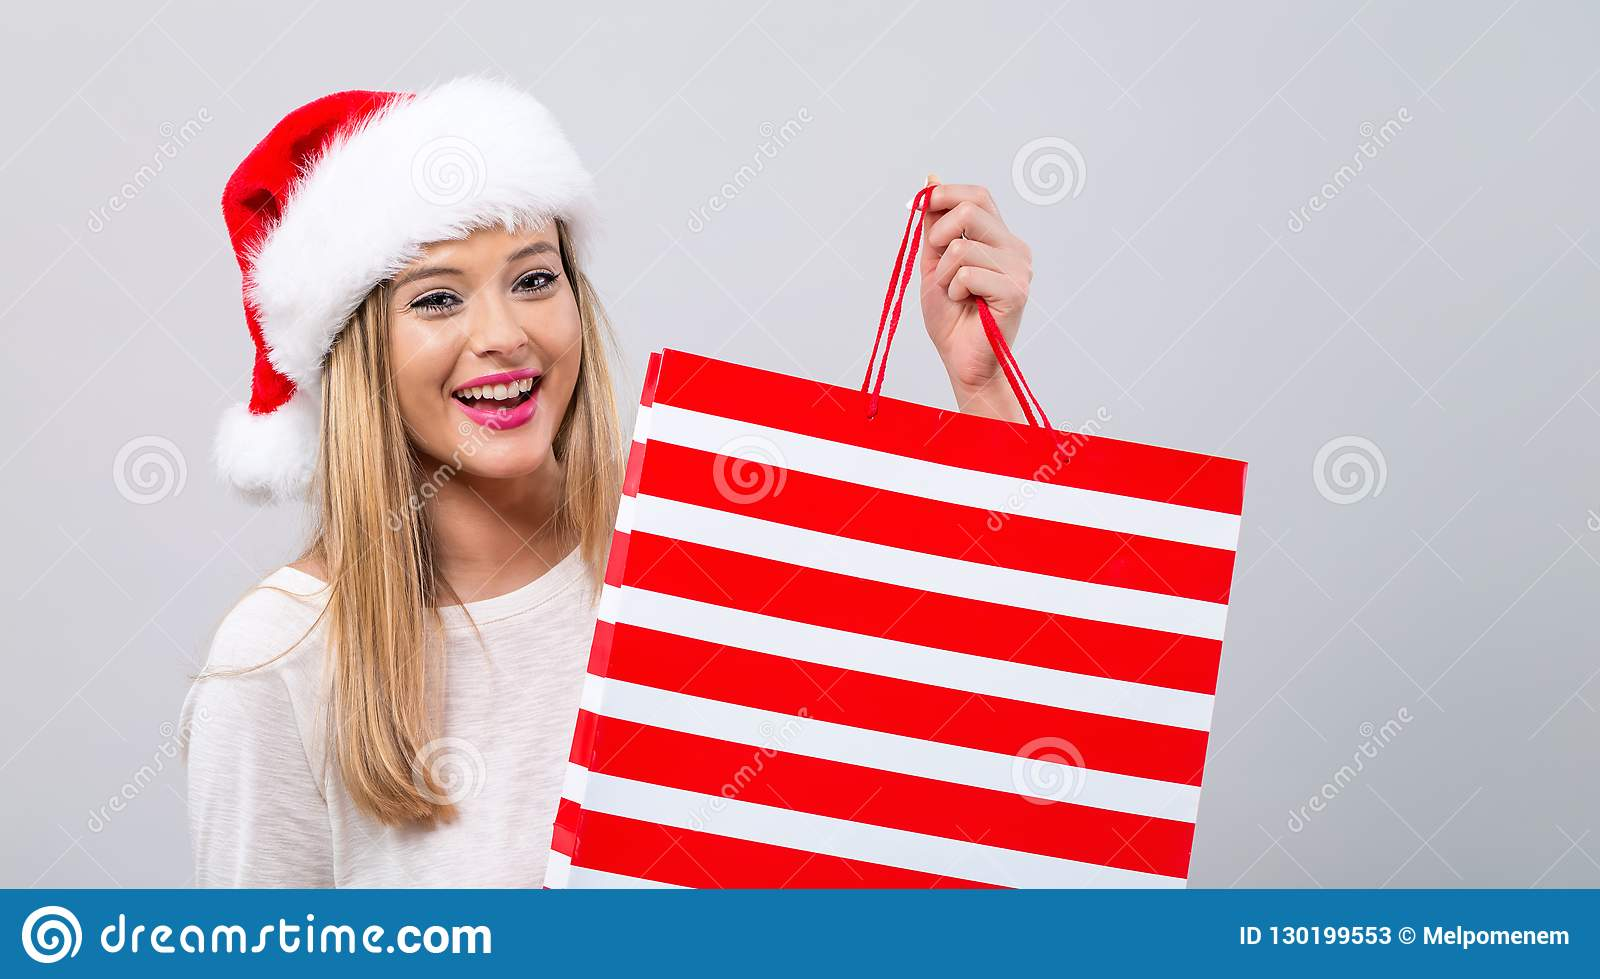 e44db540683b8 Young Woman With Santa Hat Holding A Shopping Bag Stock Image ...